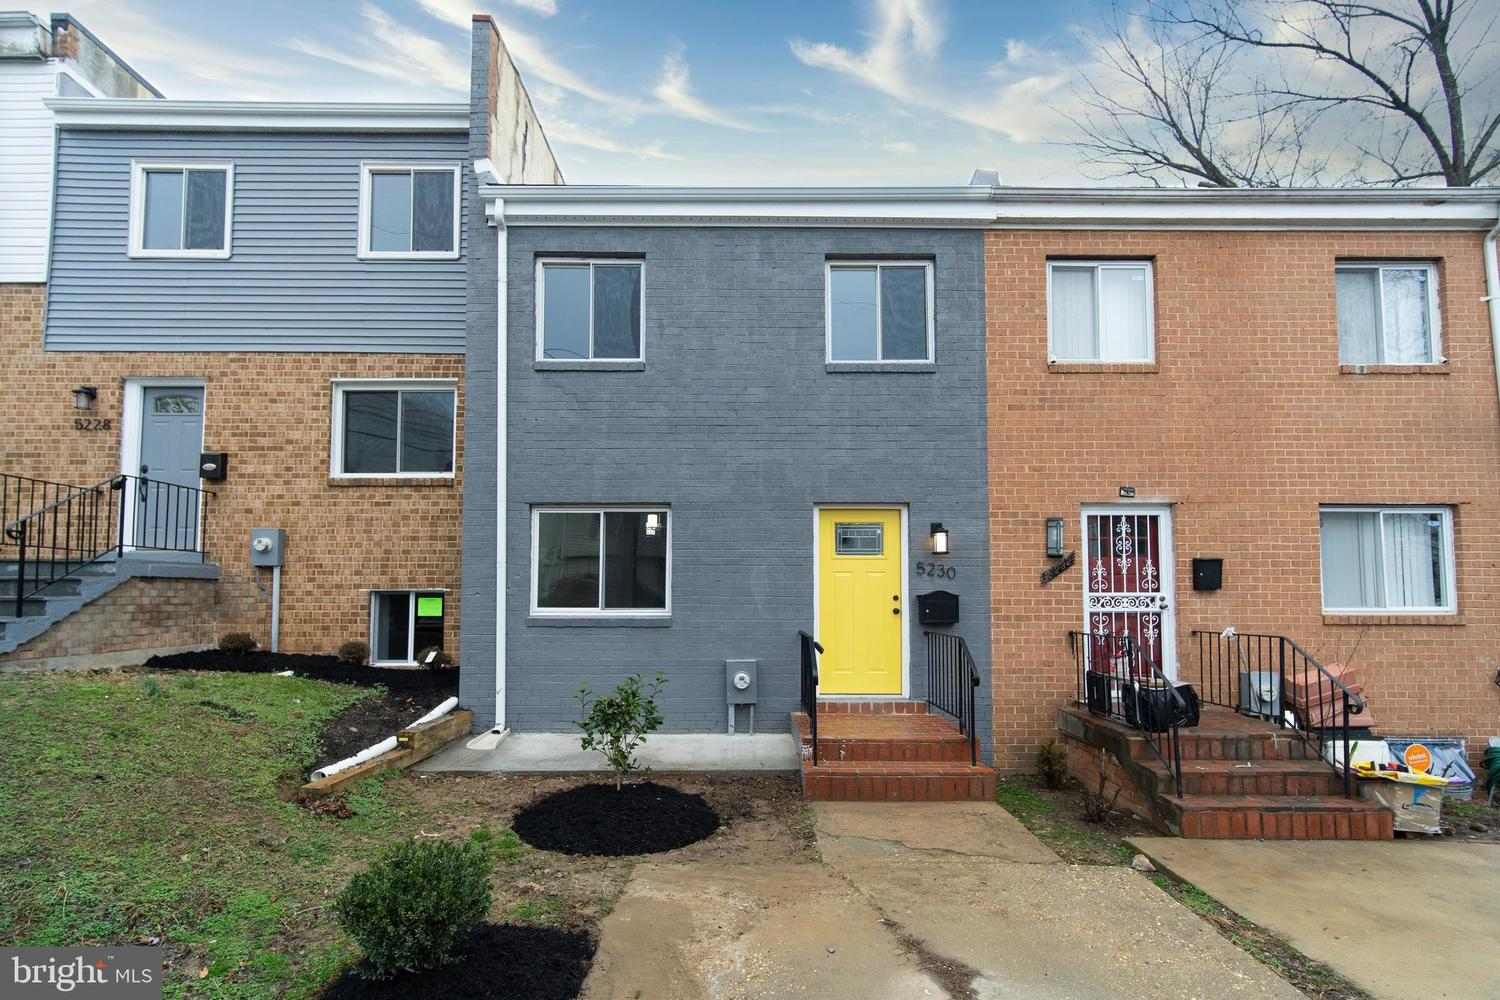 5230 Karl Place Northeast Washington, DC 20019